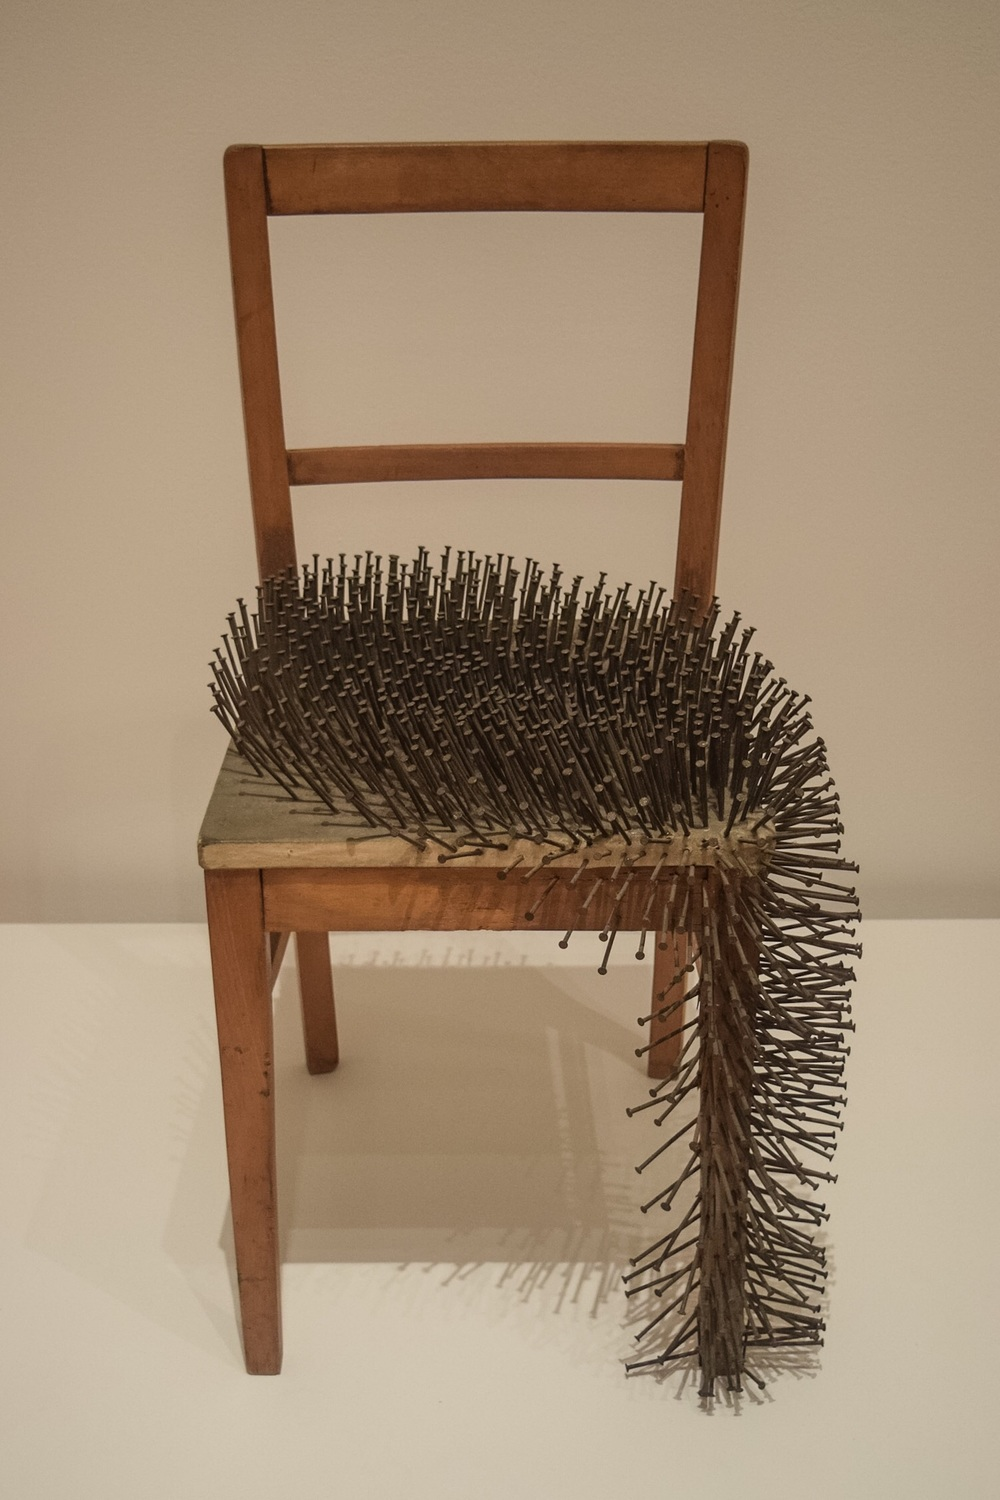 Chair from the Permanent Collection